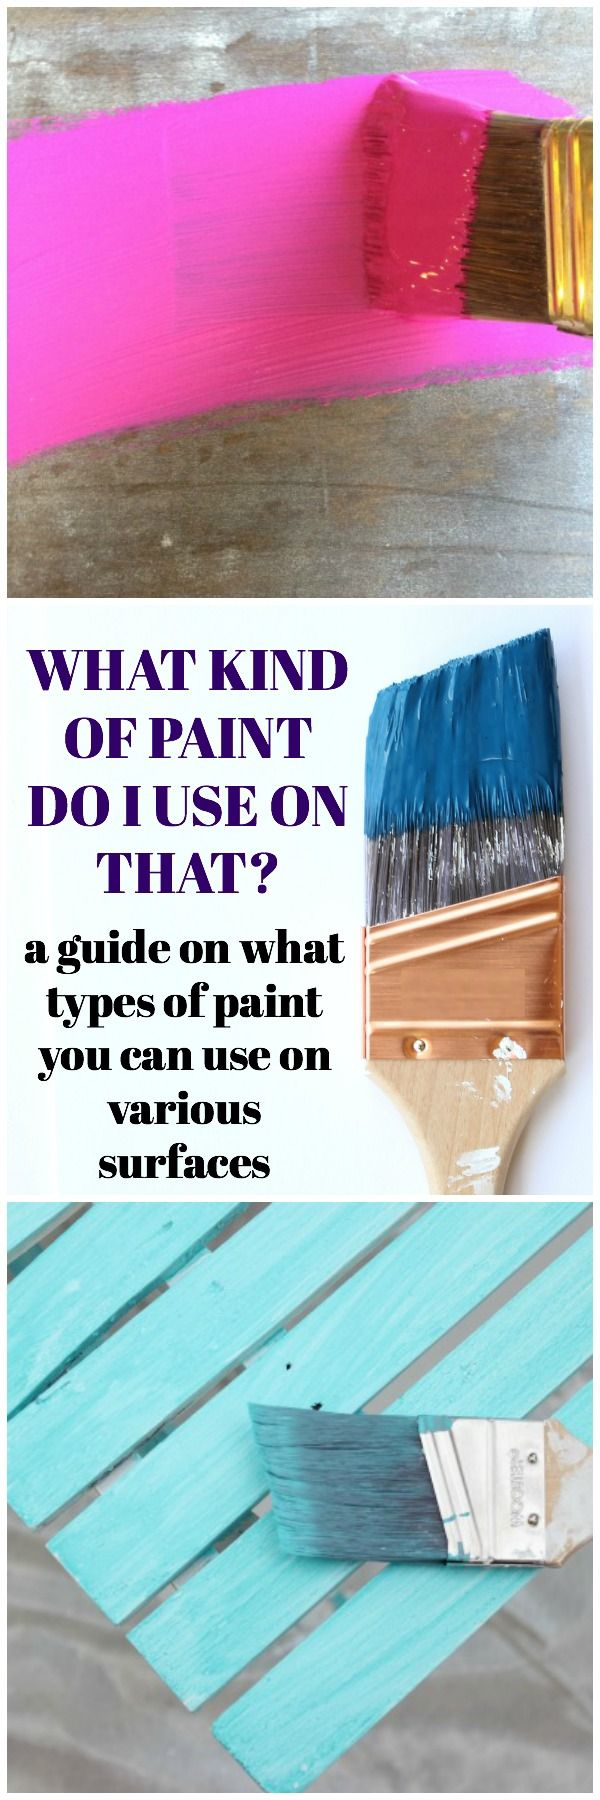 What kind of paint do I use on that? A guide to what types of paint you can use on various surfaces. Great information for beginning furniture painters.